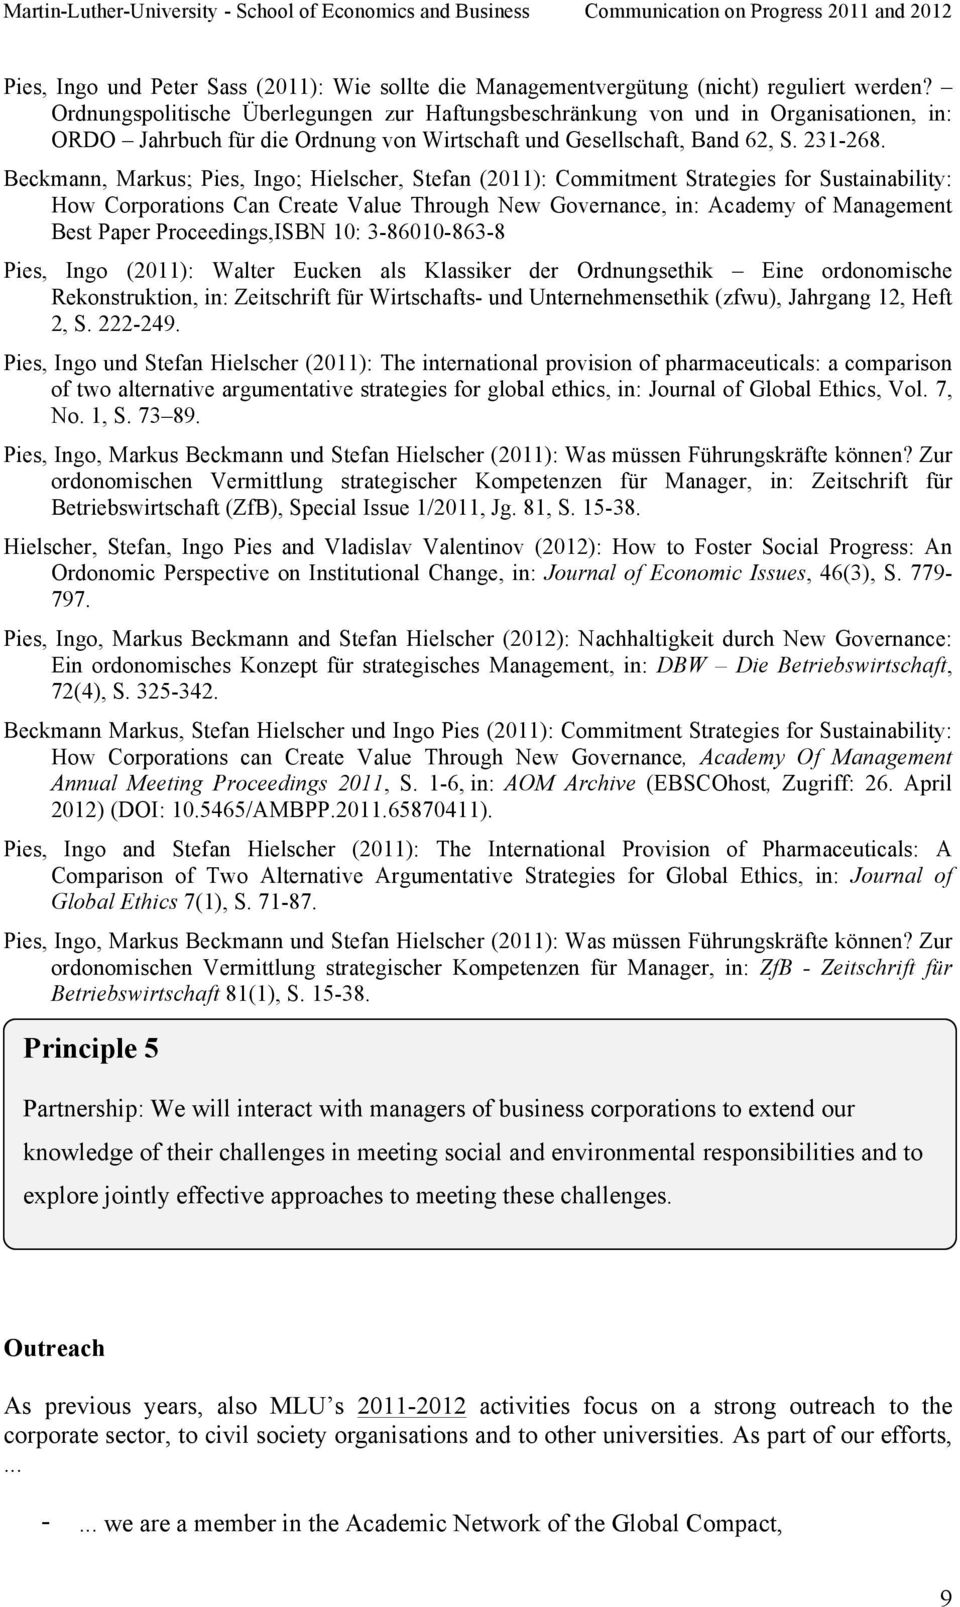 Beckmann, Markus; Pies, Ingo; Hielscher, Stefan (2011): Commitment Strategies for Sustainability: How Corporations Can Create Value Through New Governance, in: Academy of Management Best Paper